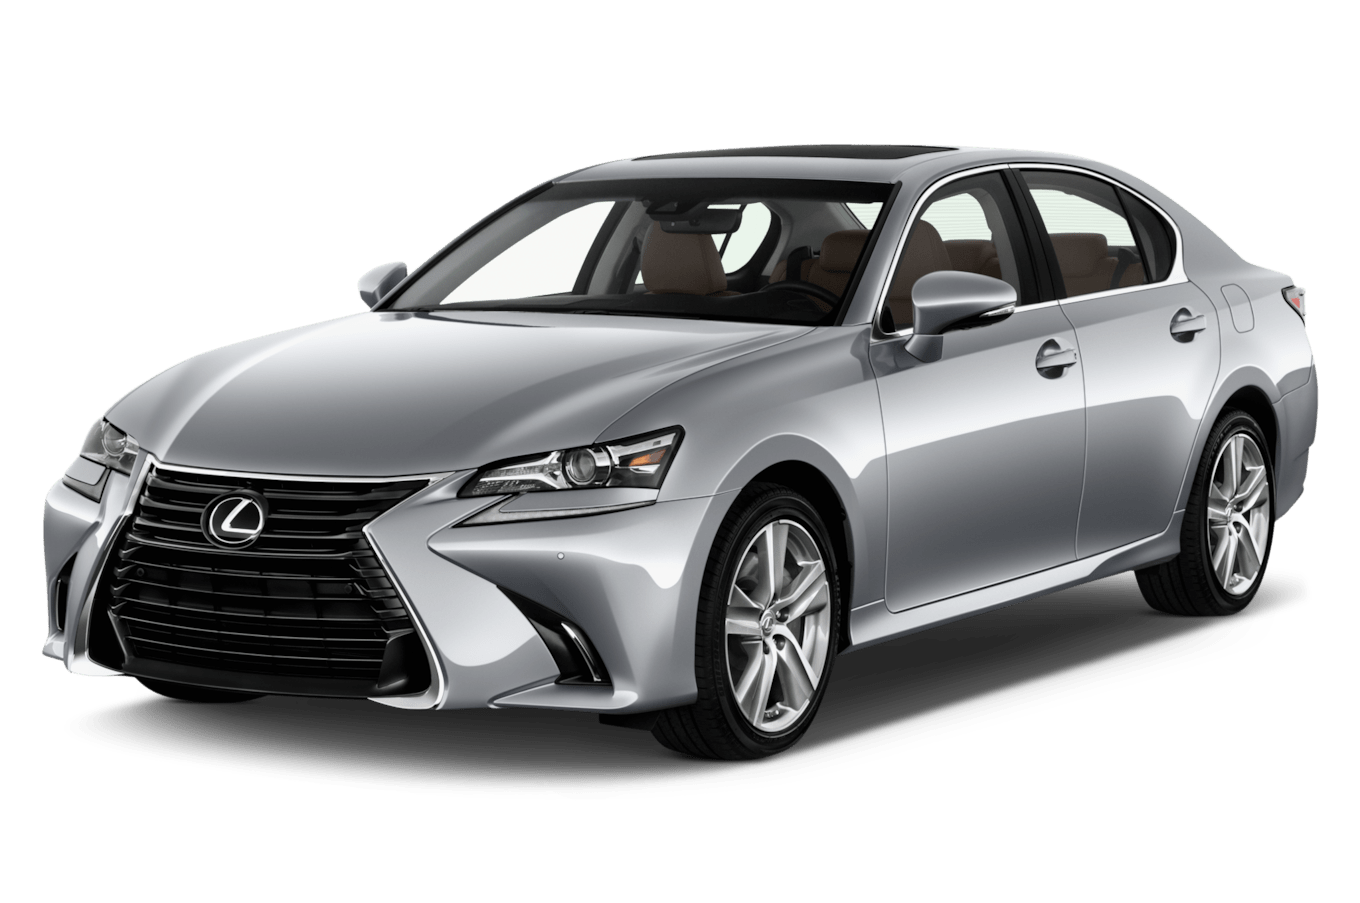 Lexus GS 200t Reviews Research New & Used Models